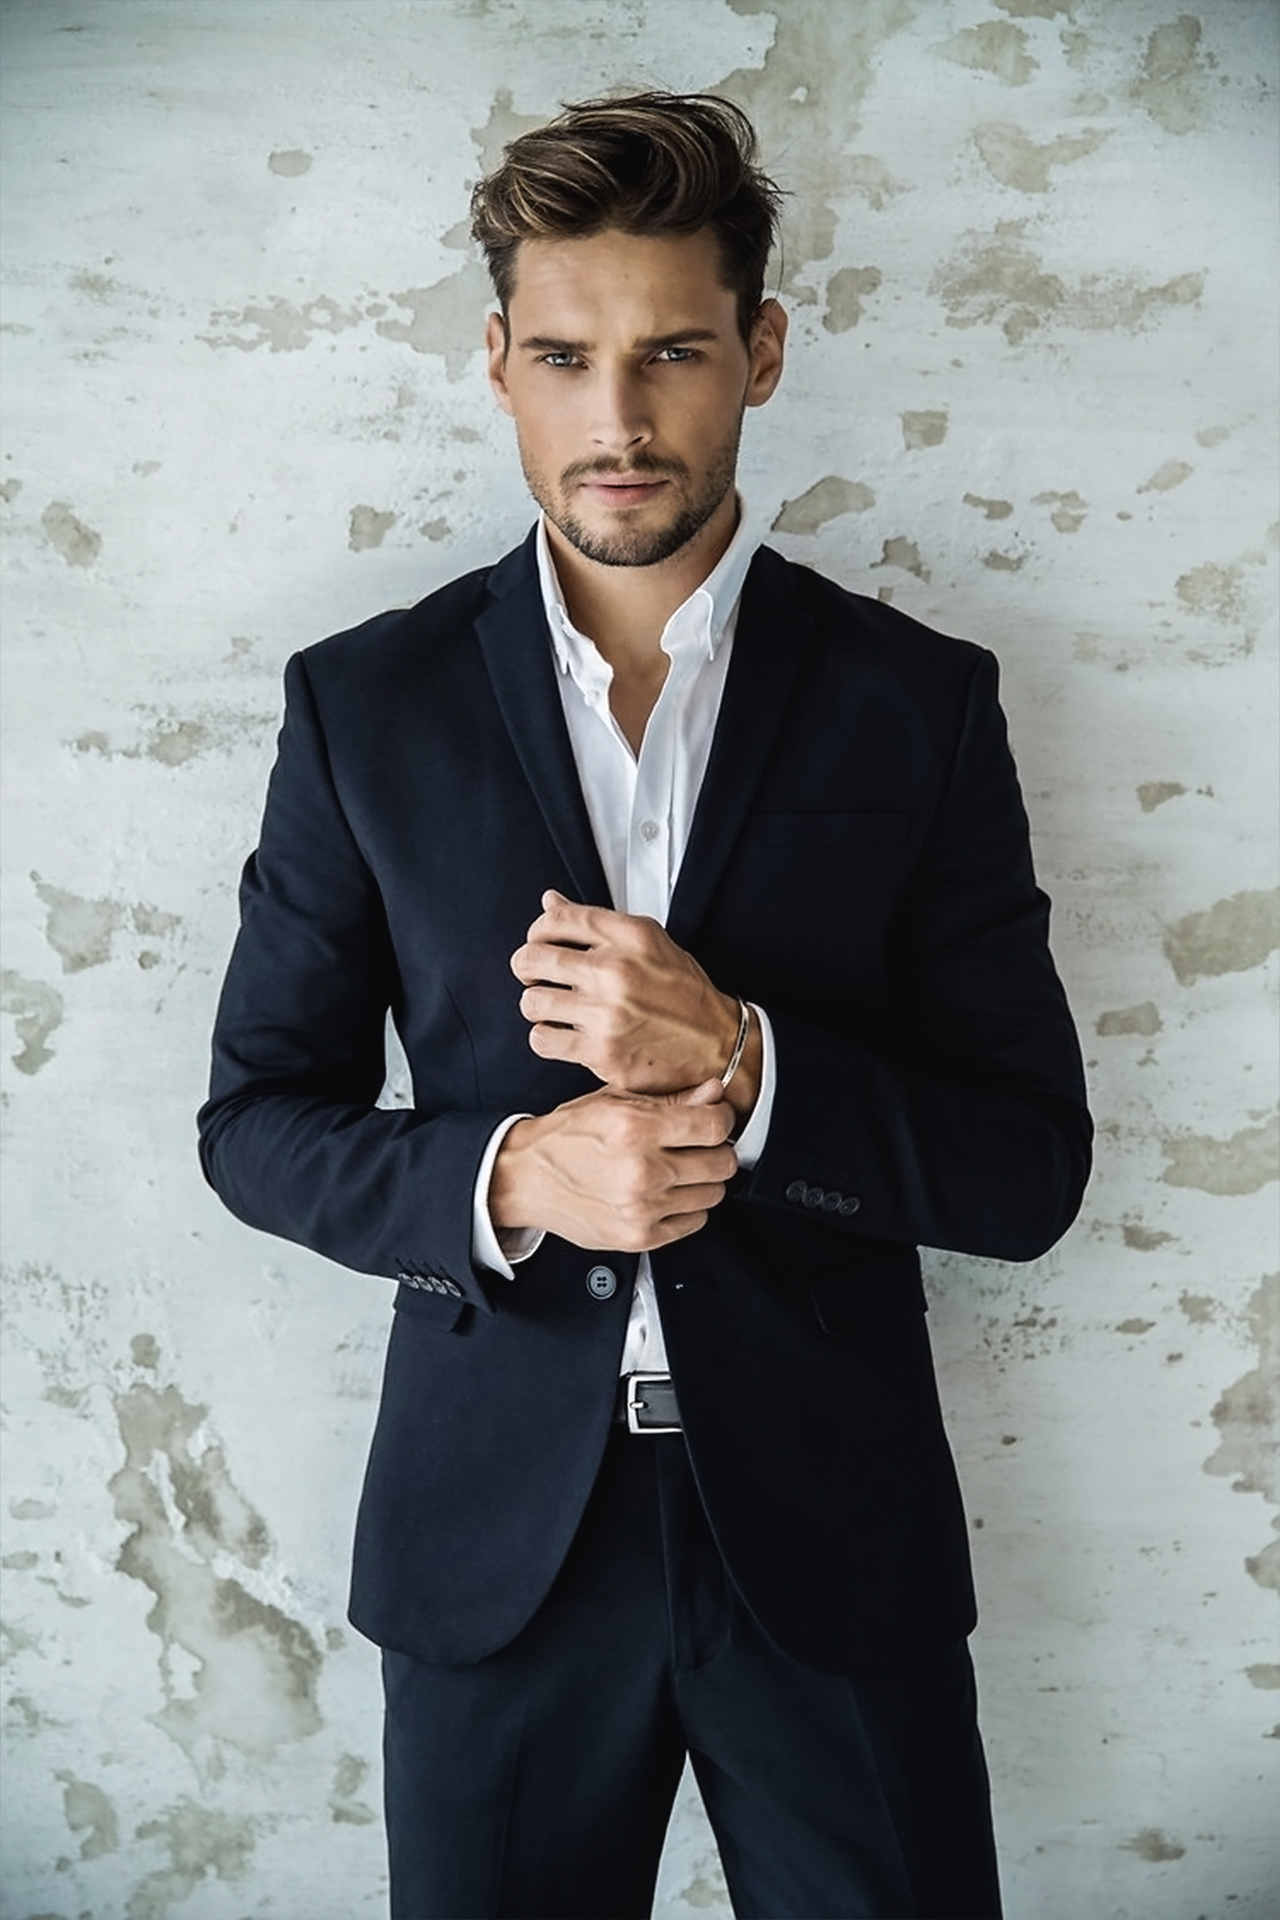 Unknown Model In 2020 Stylish Mens Suits Black Suit Men Photography Poses For Men